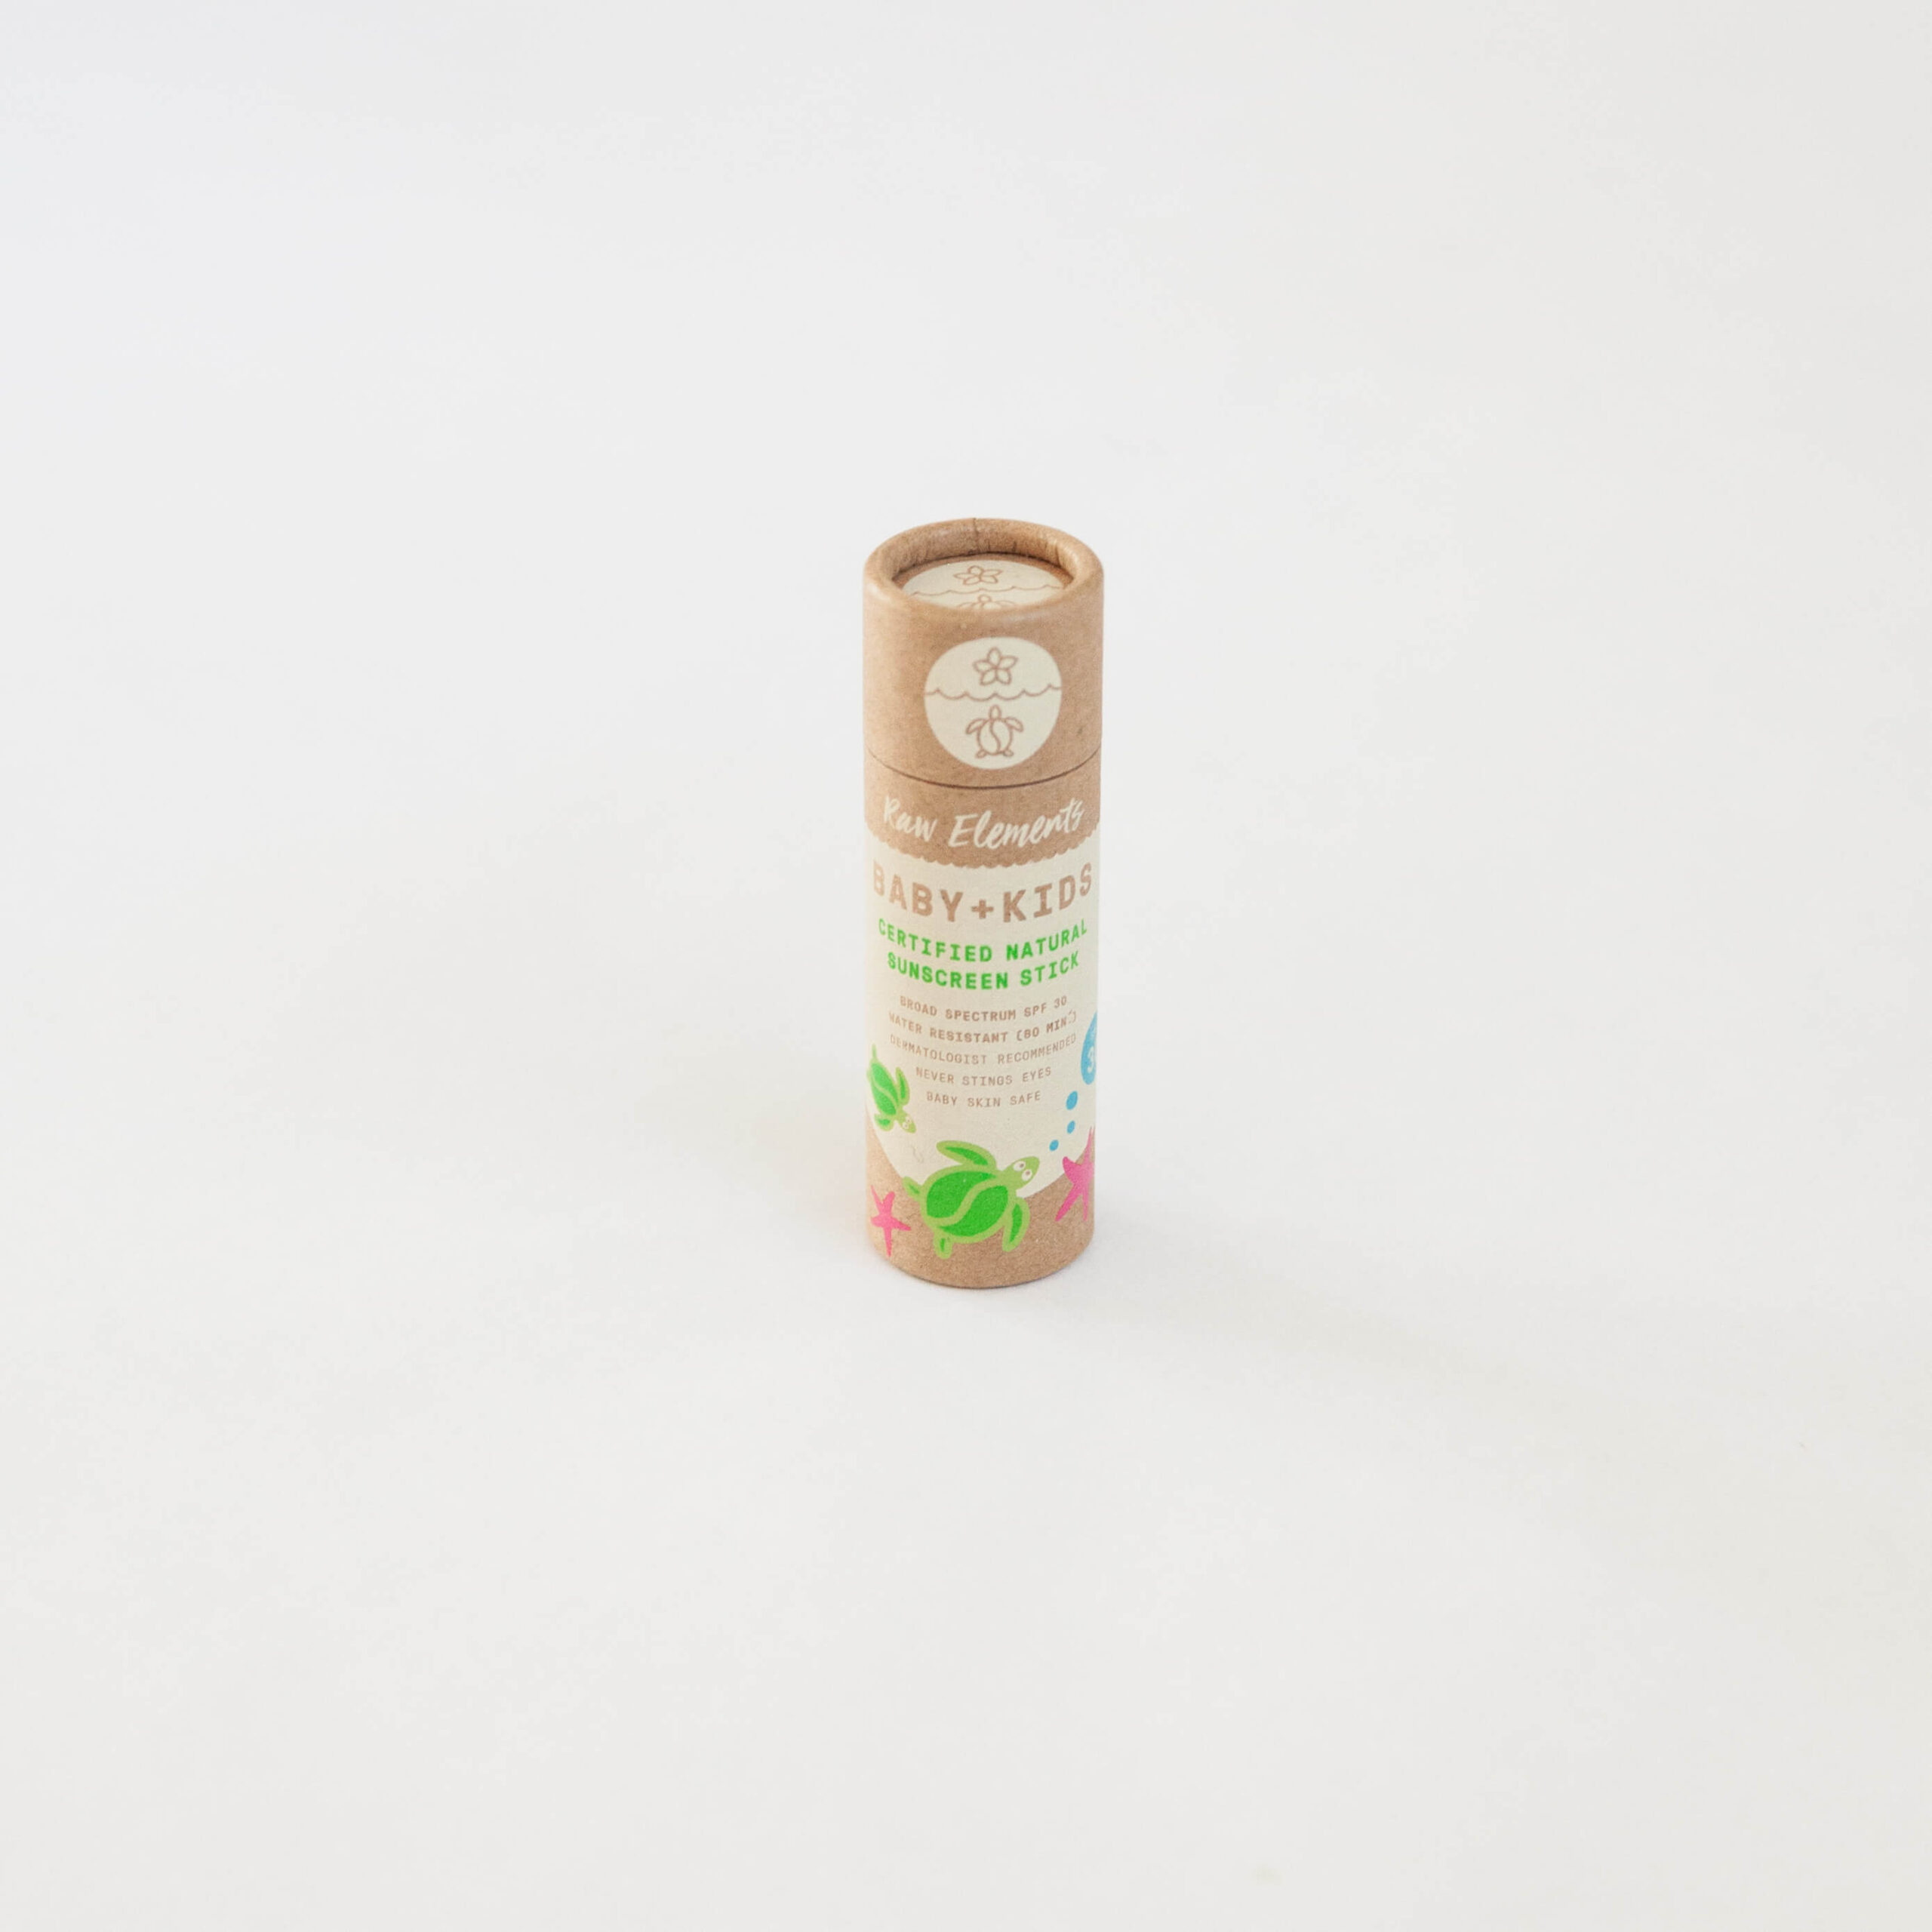 Baby + Kids Sunscreen Stick